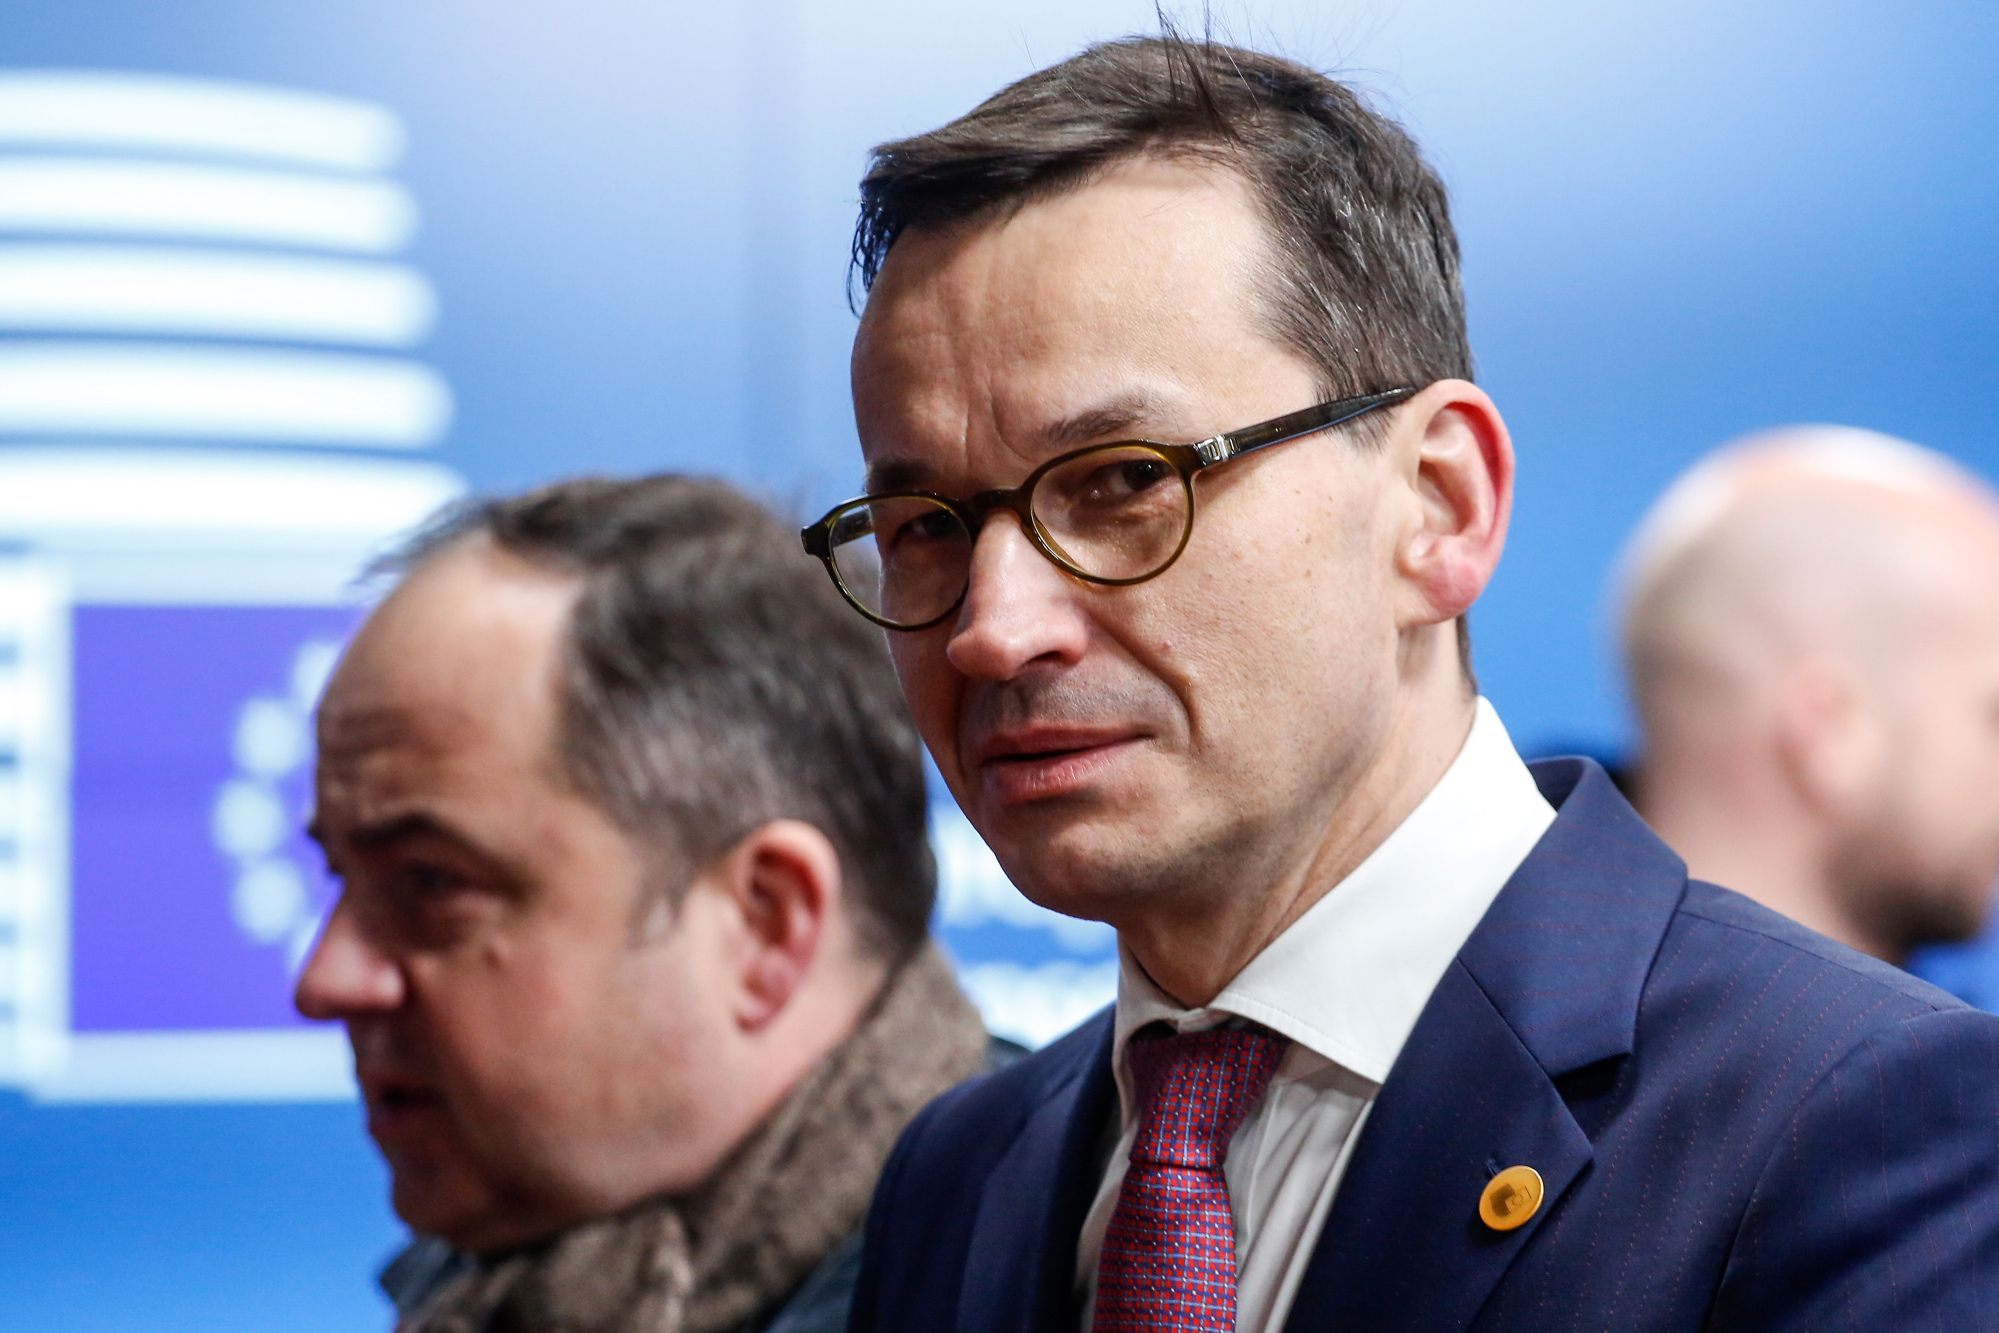 Polish Government Hit by Hate-Campaign Allegations Before Polls